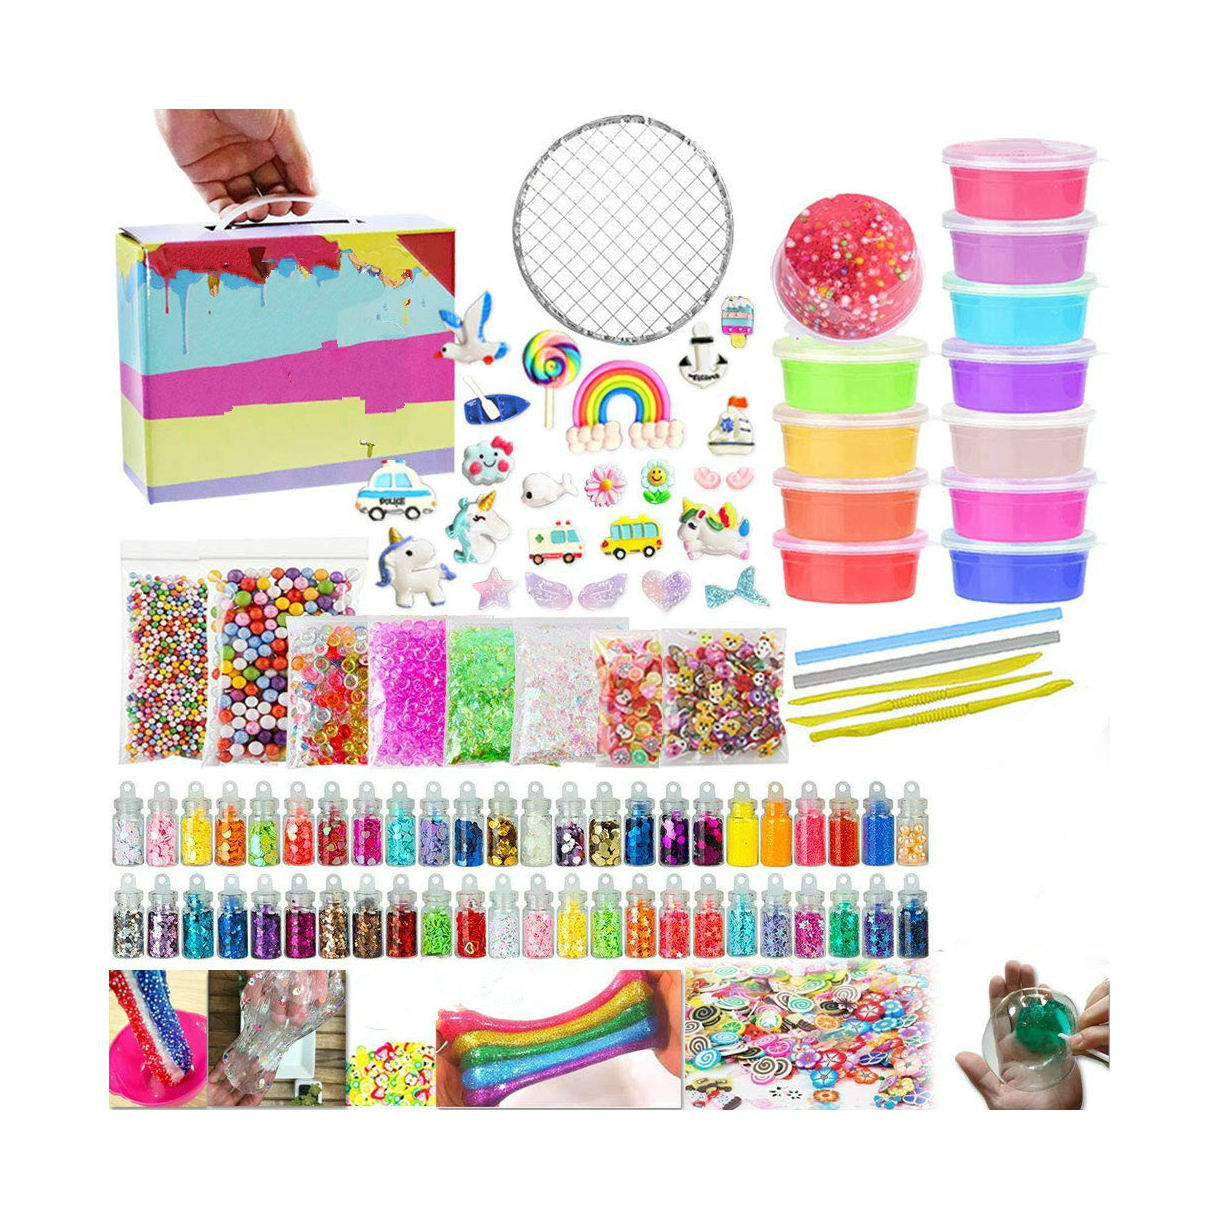 Custom DIY slime making kit educational toy diy -includes crystal clear slime, chanrms, foam balls etc.